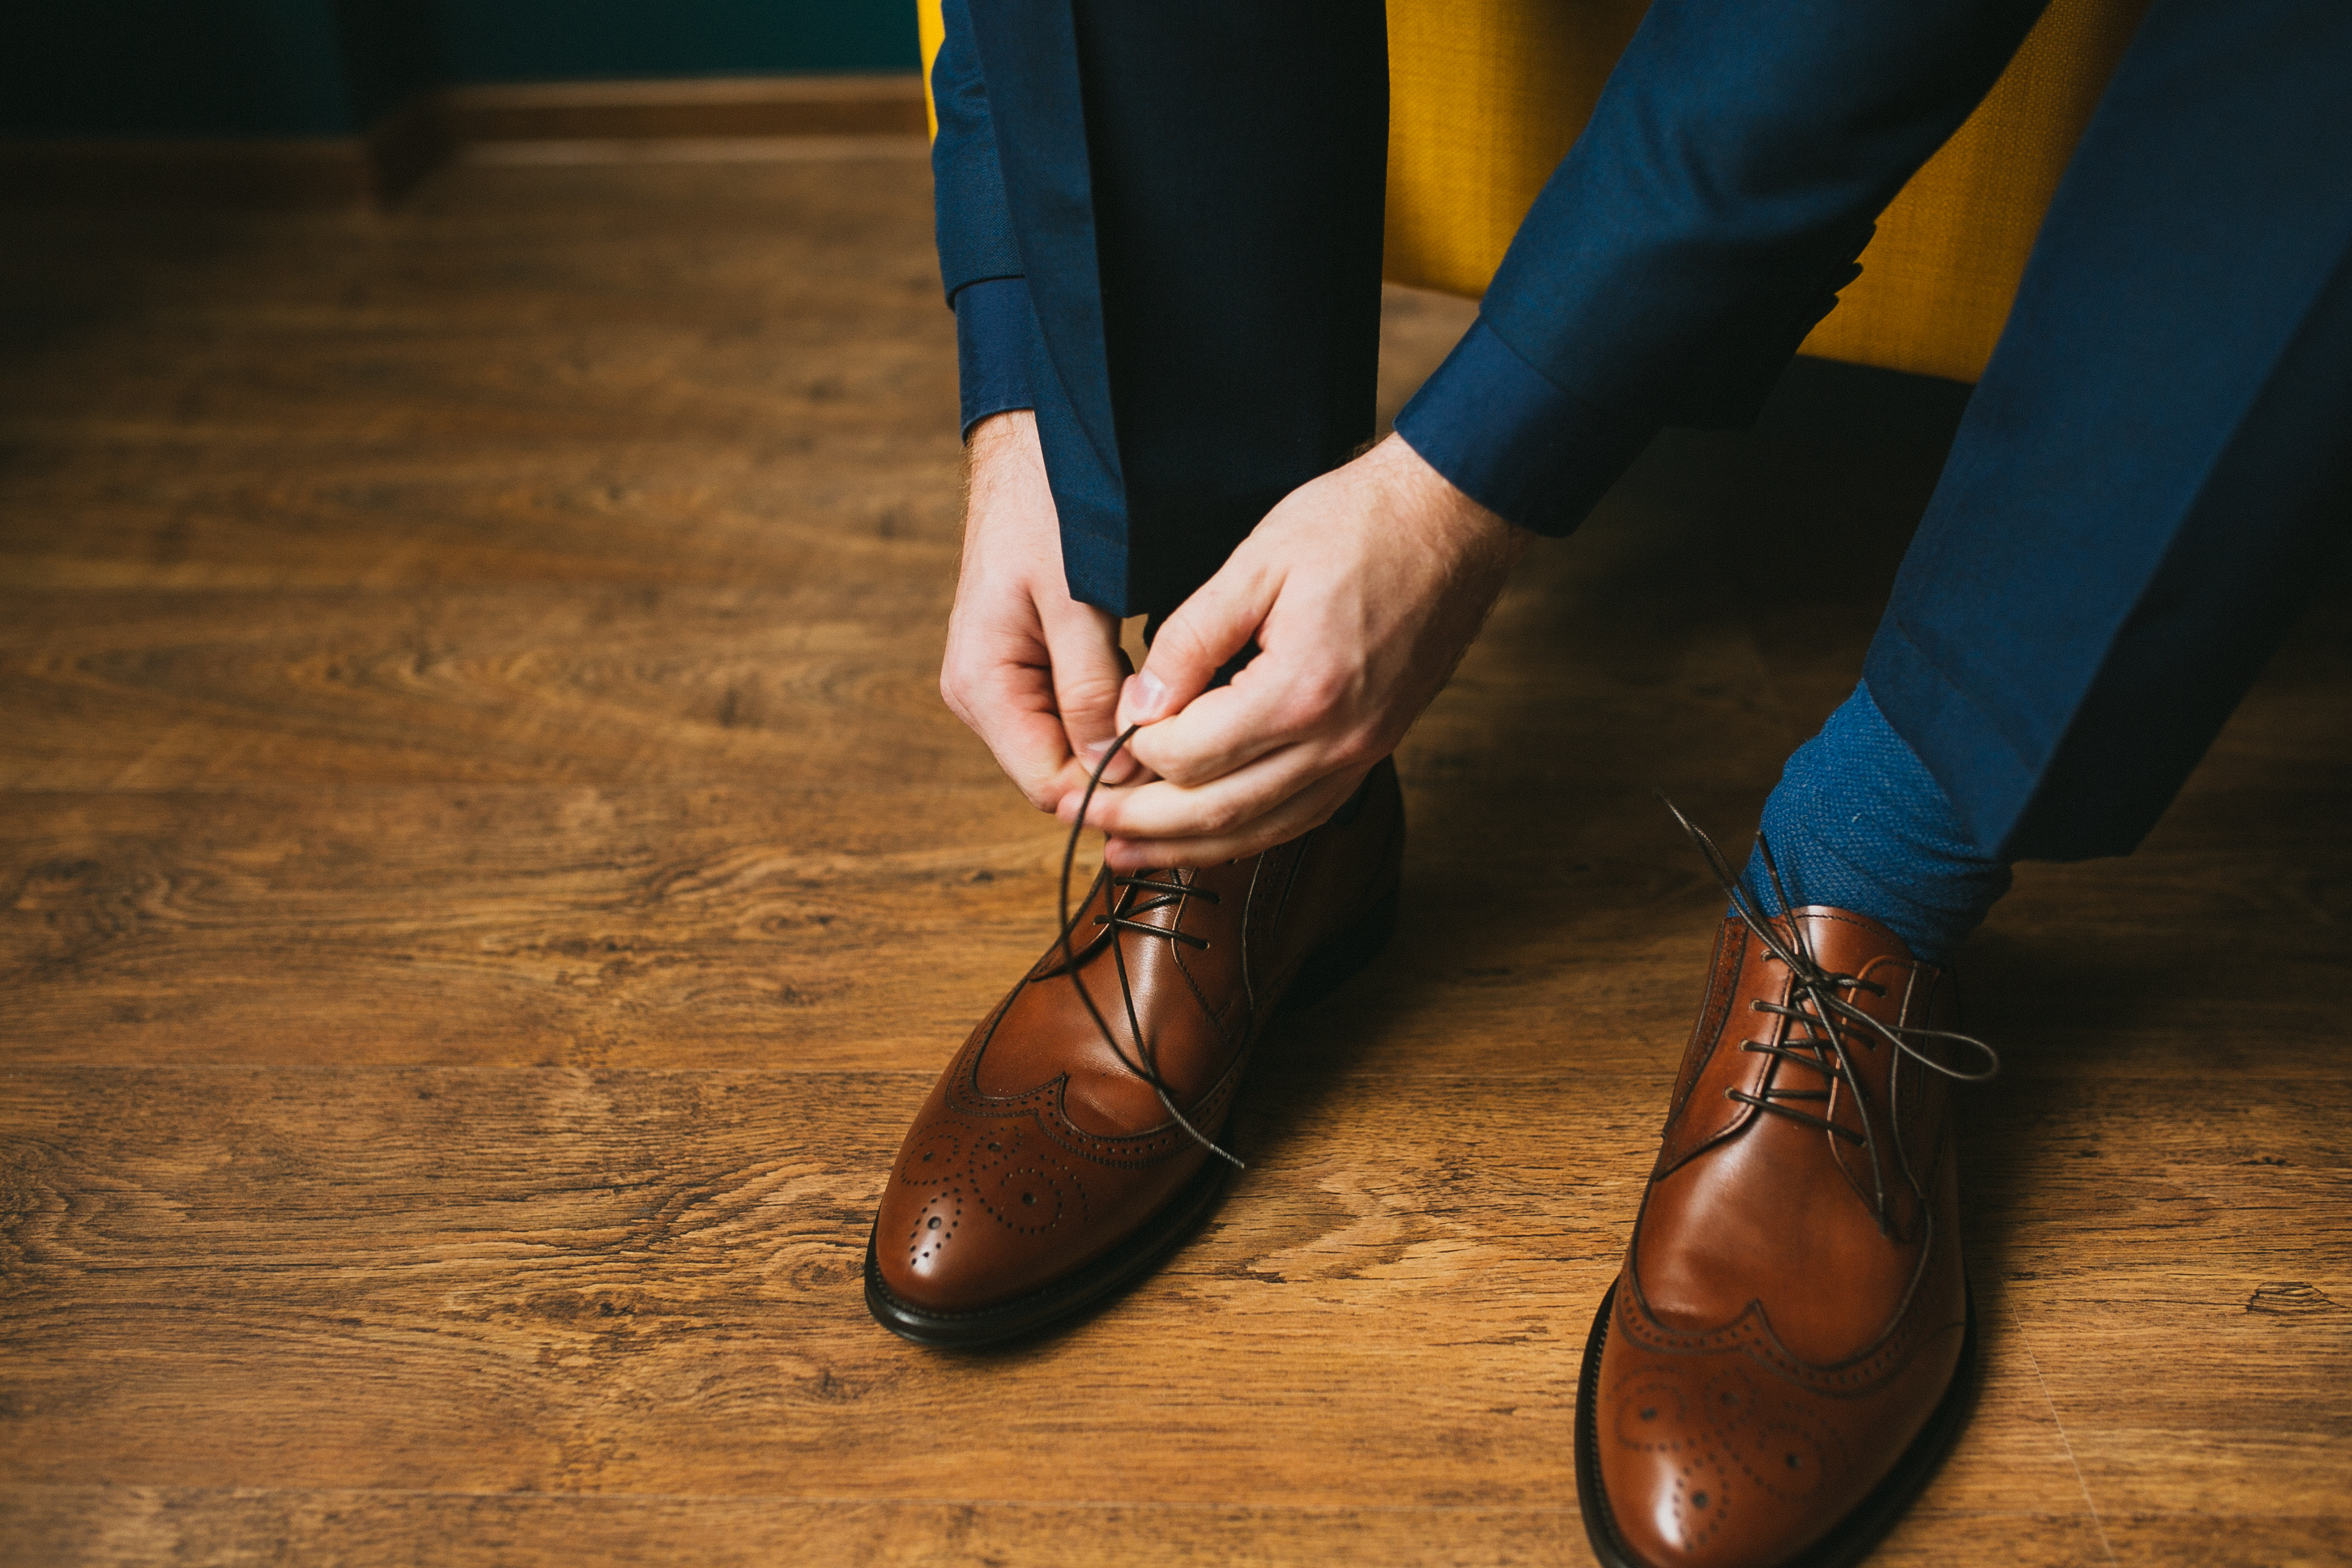 A man in a blue suit ties up shoelaces o